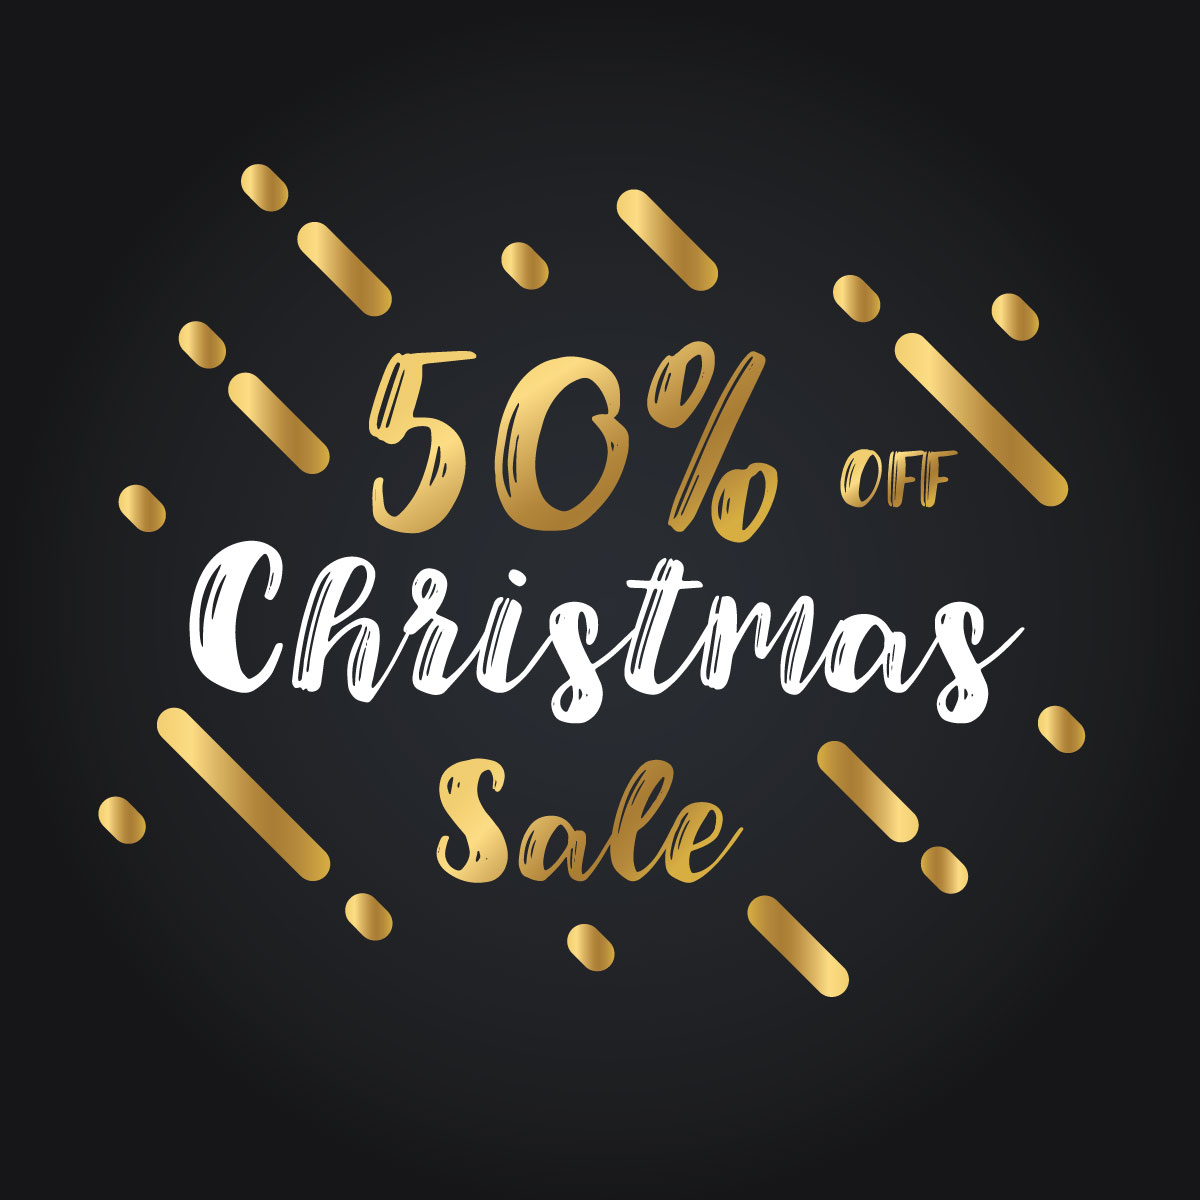 Christmas and New Year 2018 Discount Sale banners example image 2